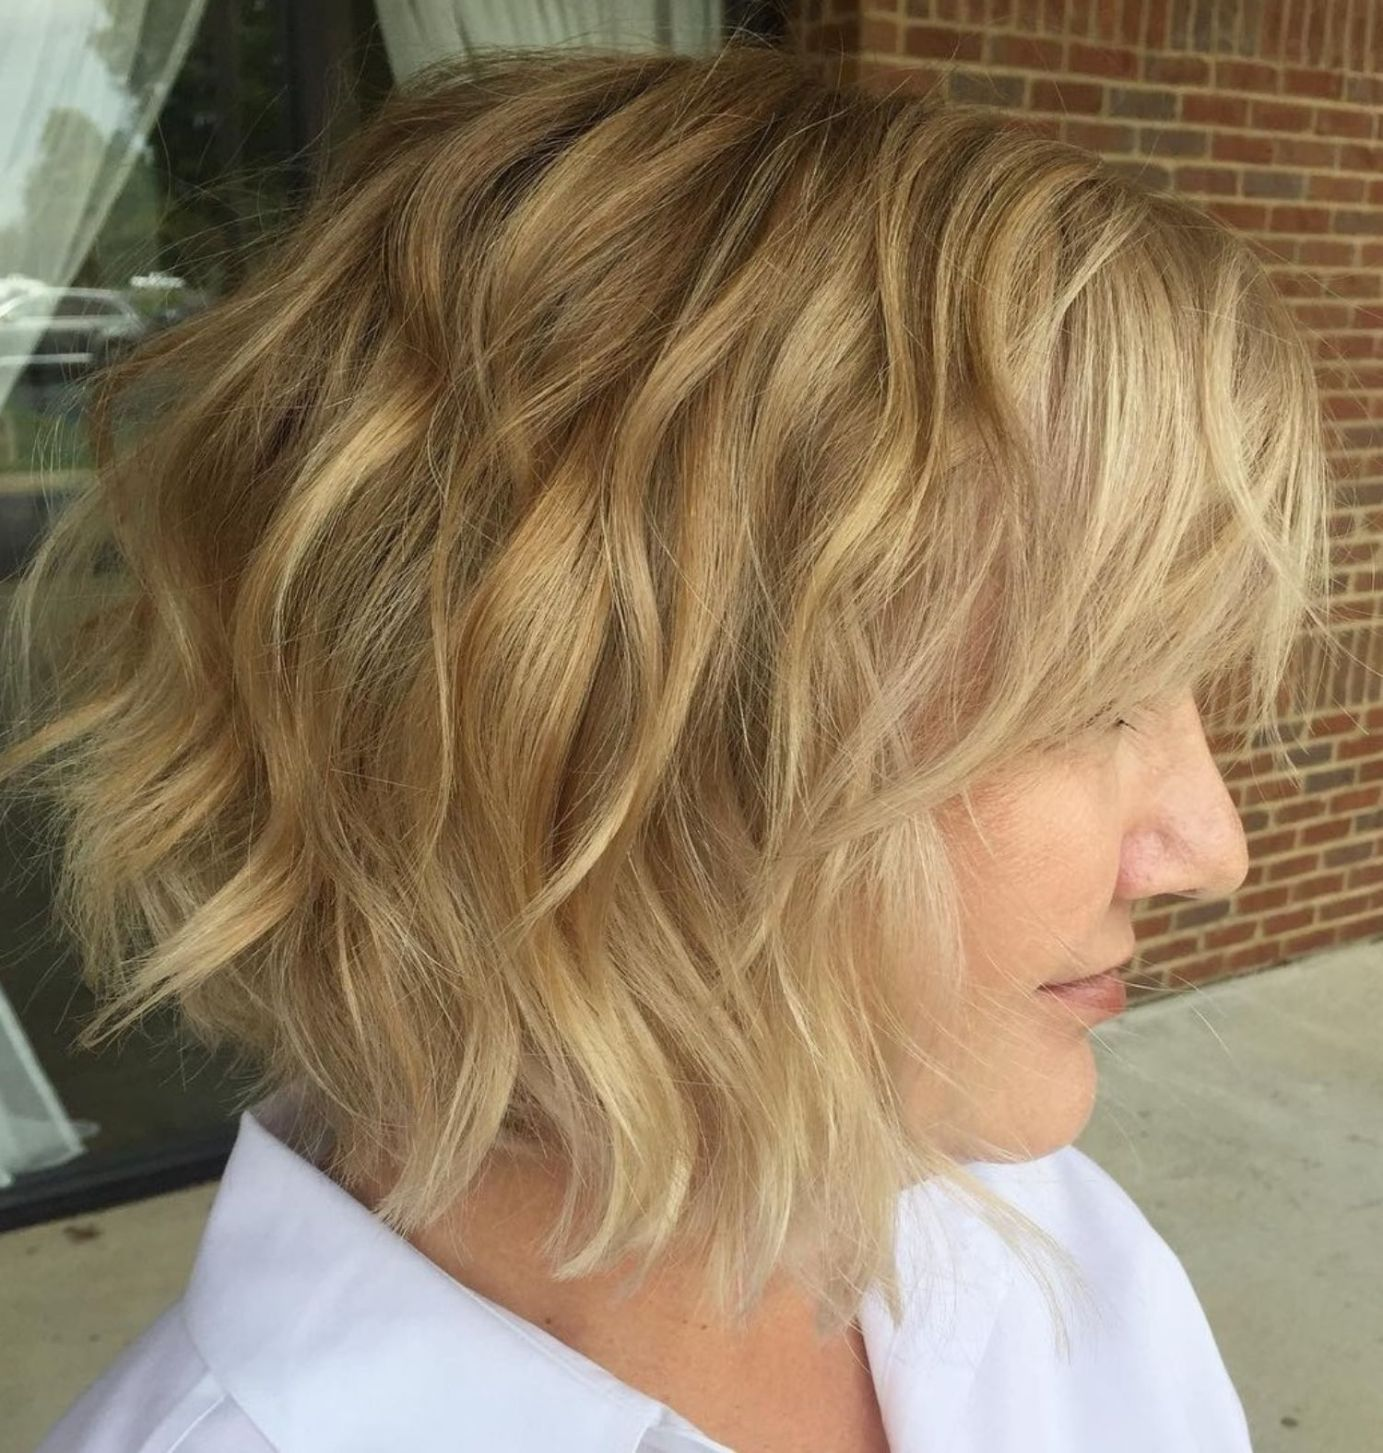 80 Best Modern Hairstyles and Haircuts for Women Over 50 ...